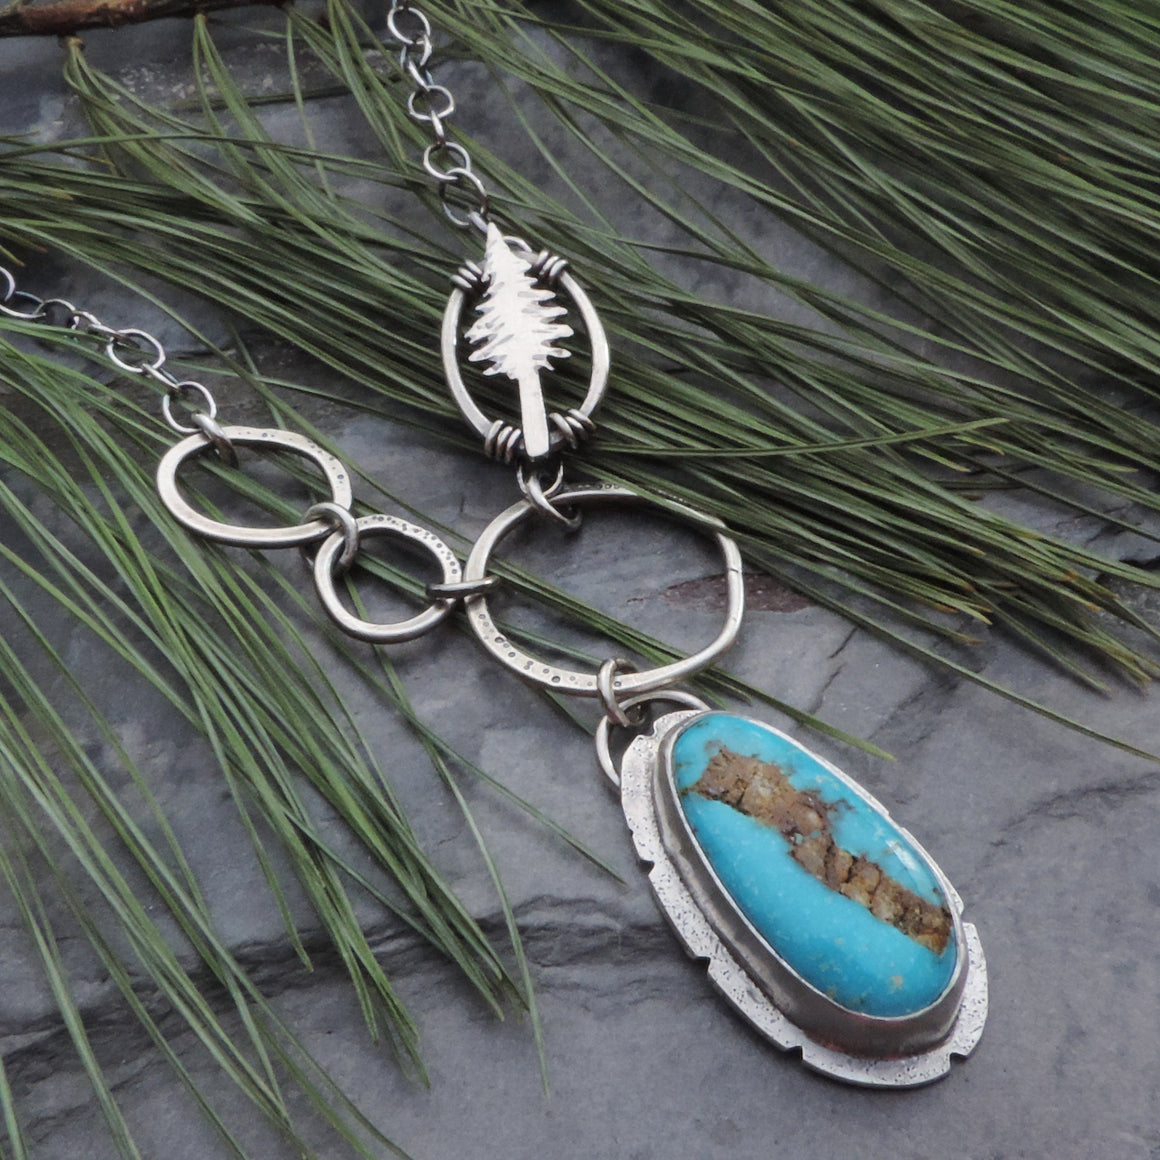 Fox Turquoise Pendant with Pine Tree Accent